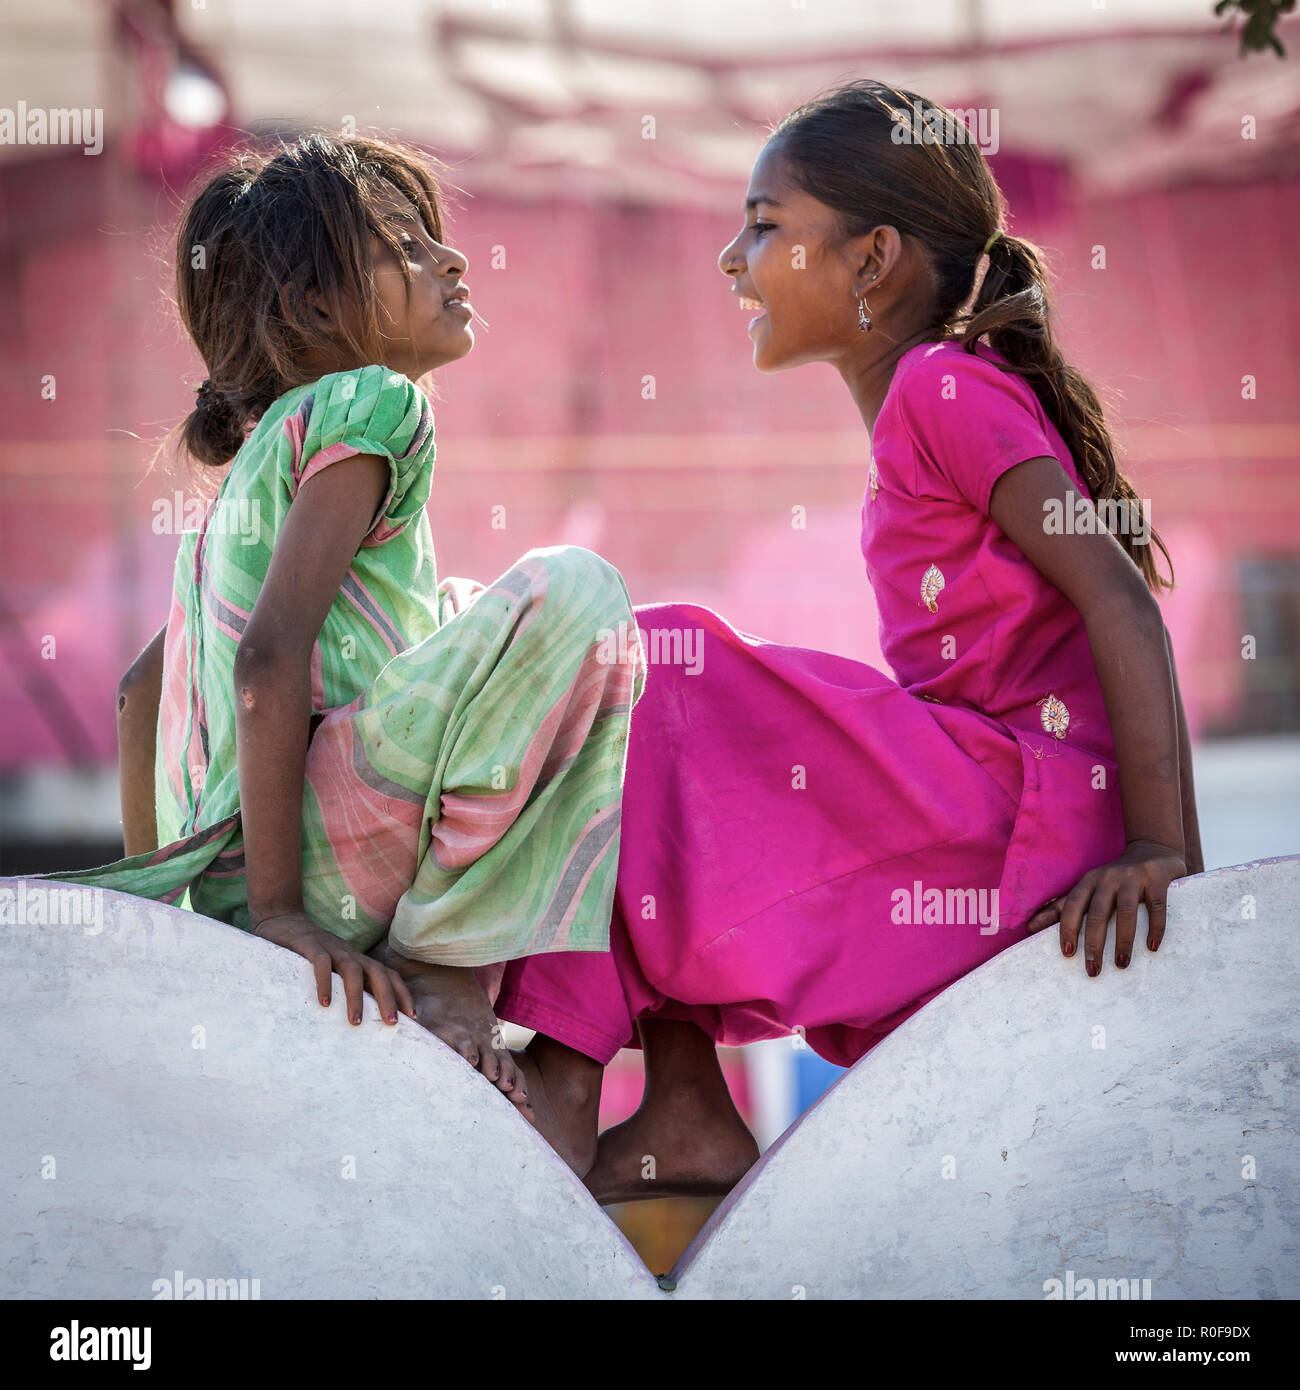 Two poor girls sitting on a wall, portrait, Pushkar, Rajasthan, India - Stock Image